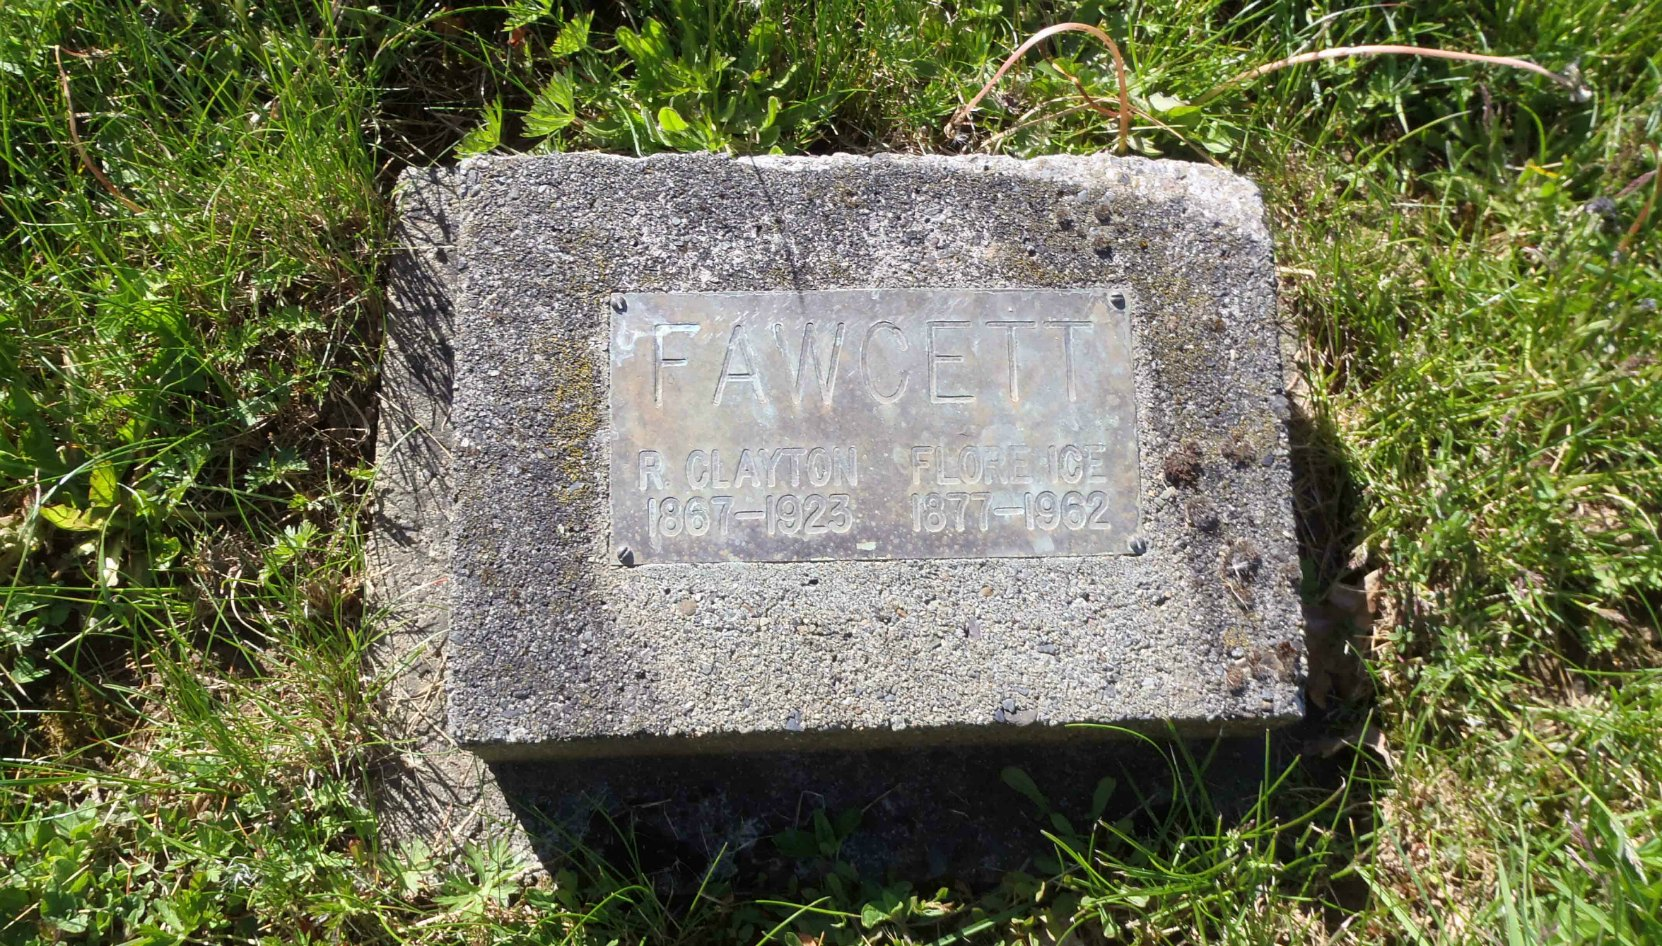 Roland Clayton Fawcett grave stone, St. Mary's Somenos Anglican cemetery, North Cowichan, B.C.